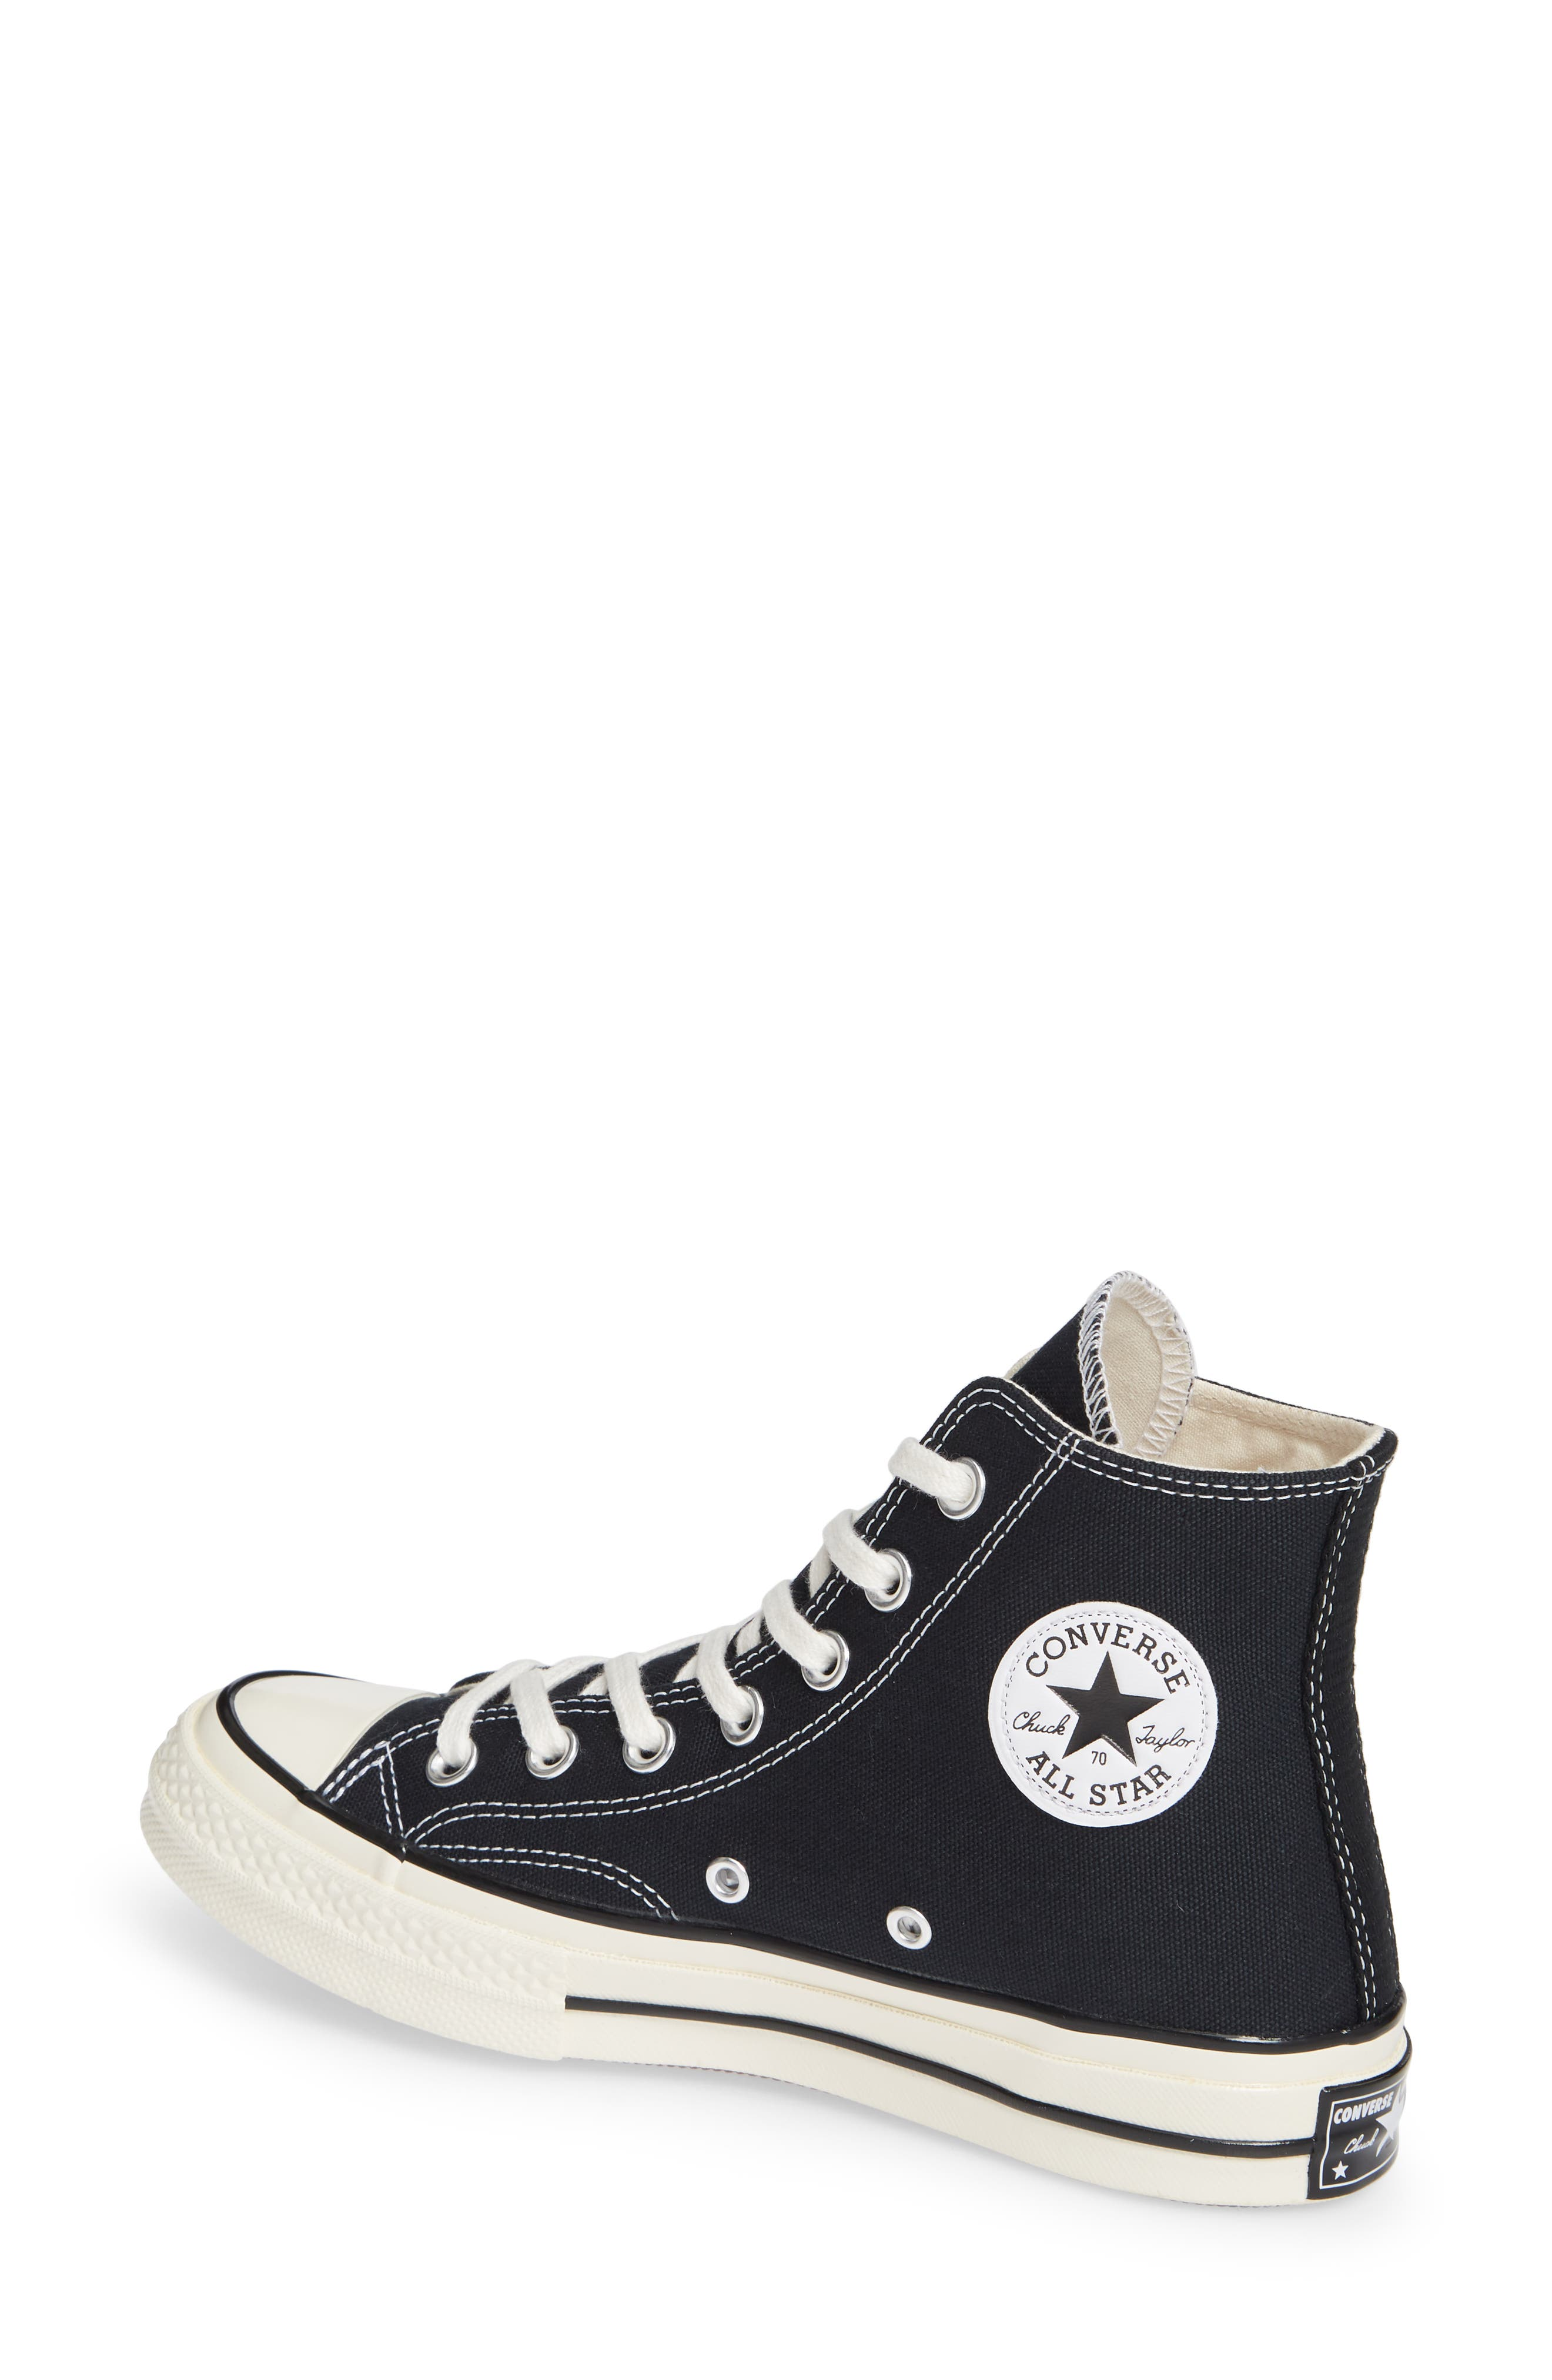 CONVERSE, Chuck Taylor<sup>®</sup> All Star<sup>®</sup> Chuck 70 High Top Sneaker, Alternate thumbnail 2, color, BLACK